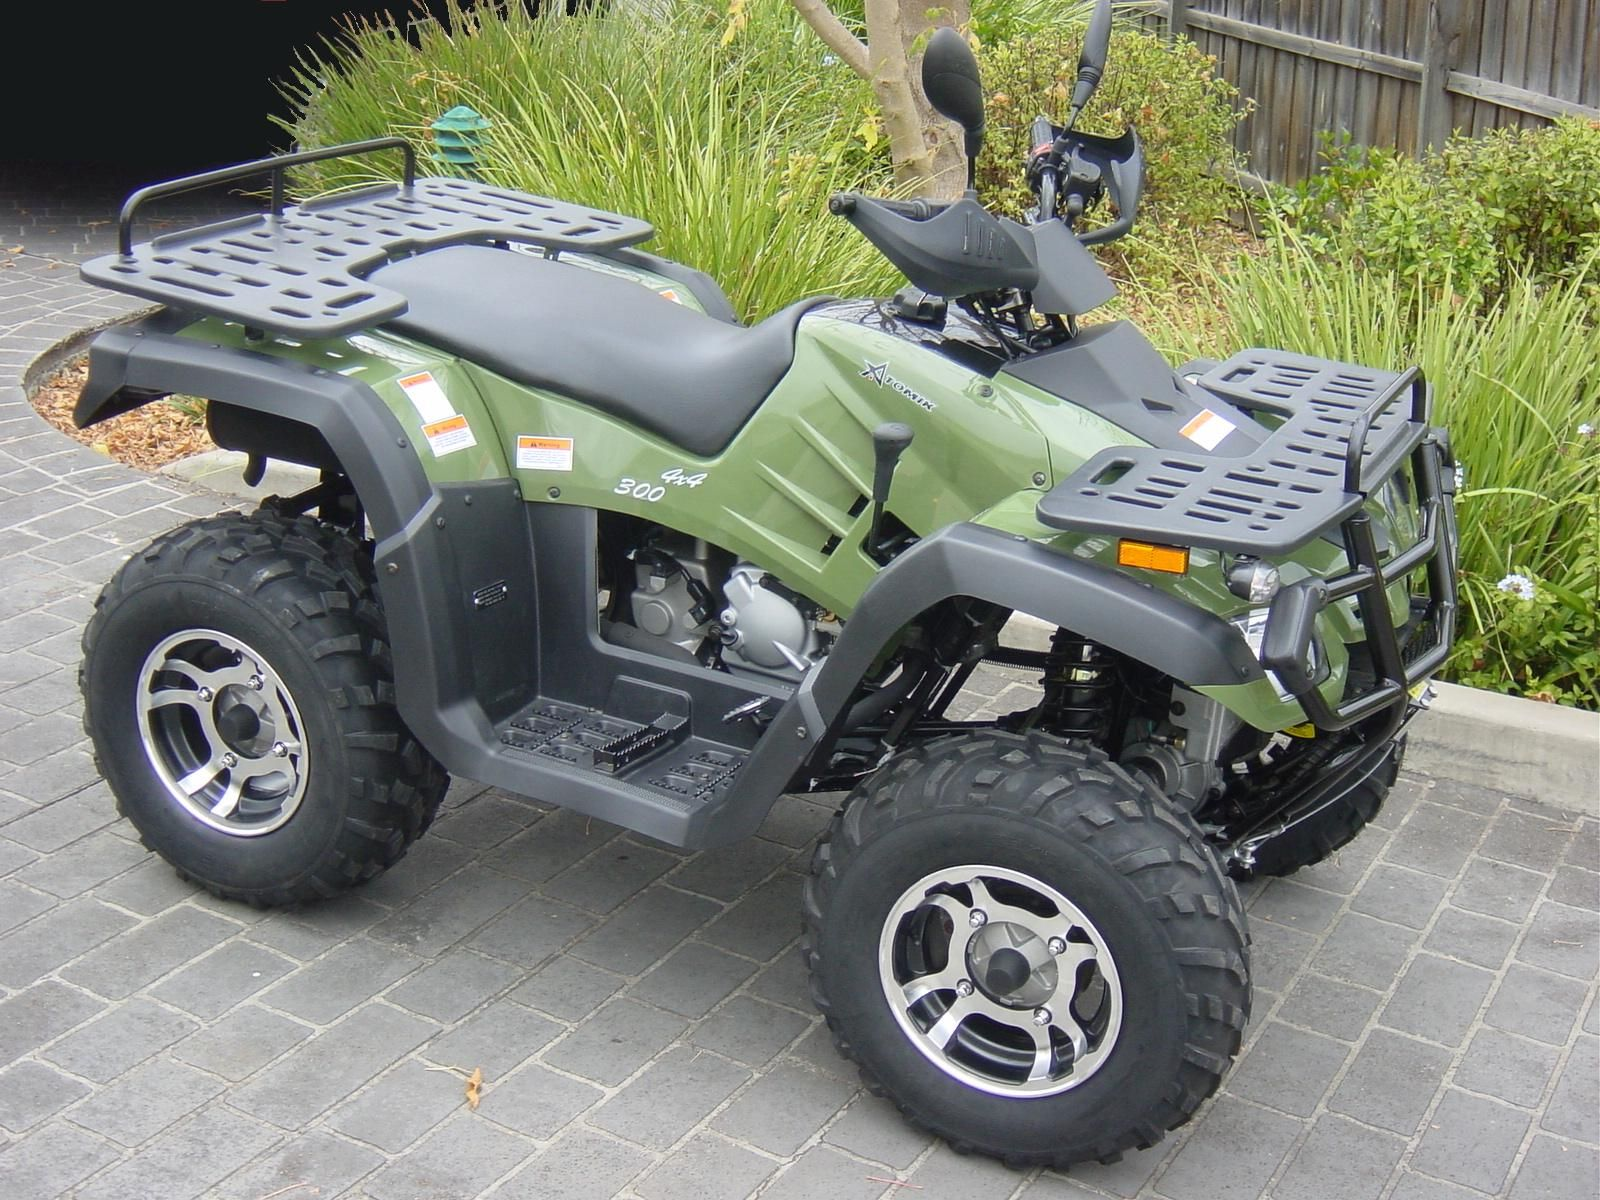 300cc 4wd Farm Quad Bike Http Www Biketrade Co Uk With Images